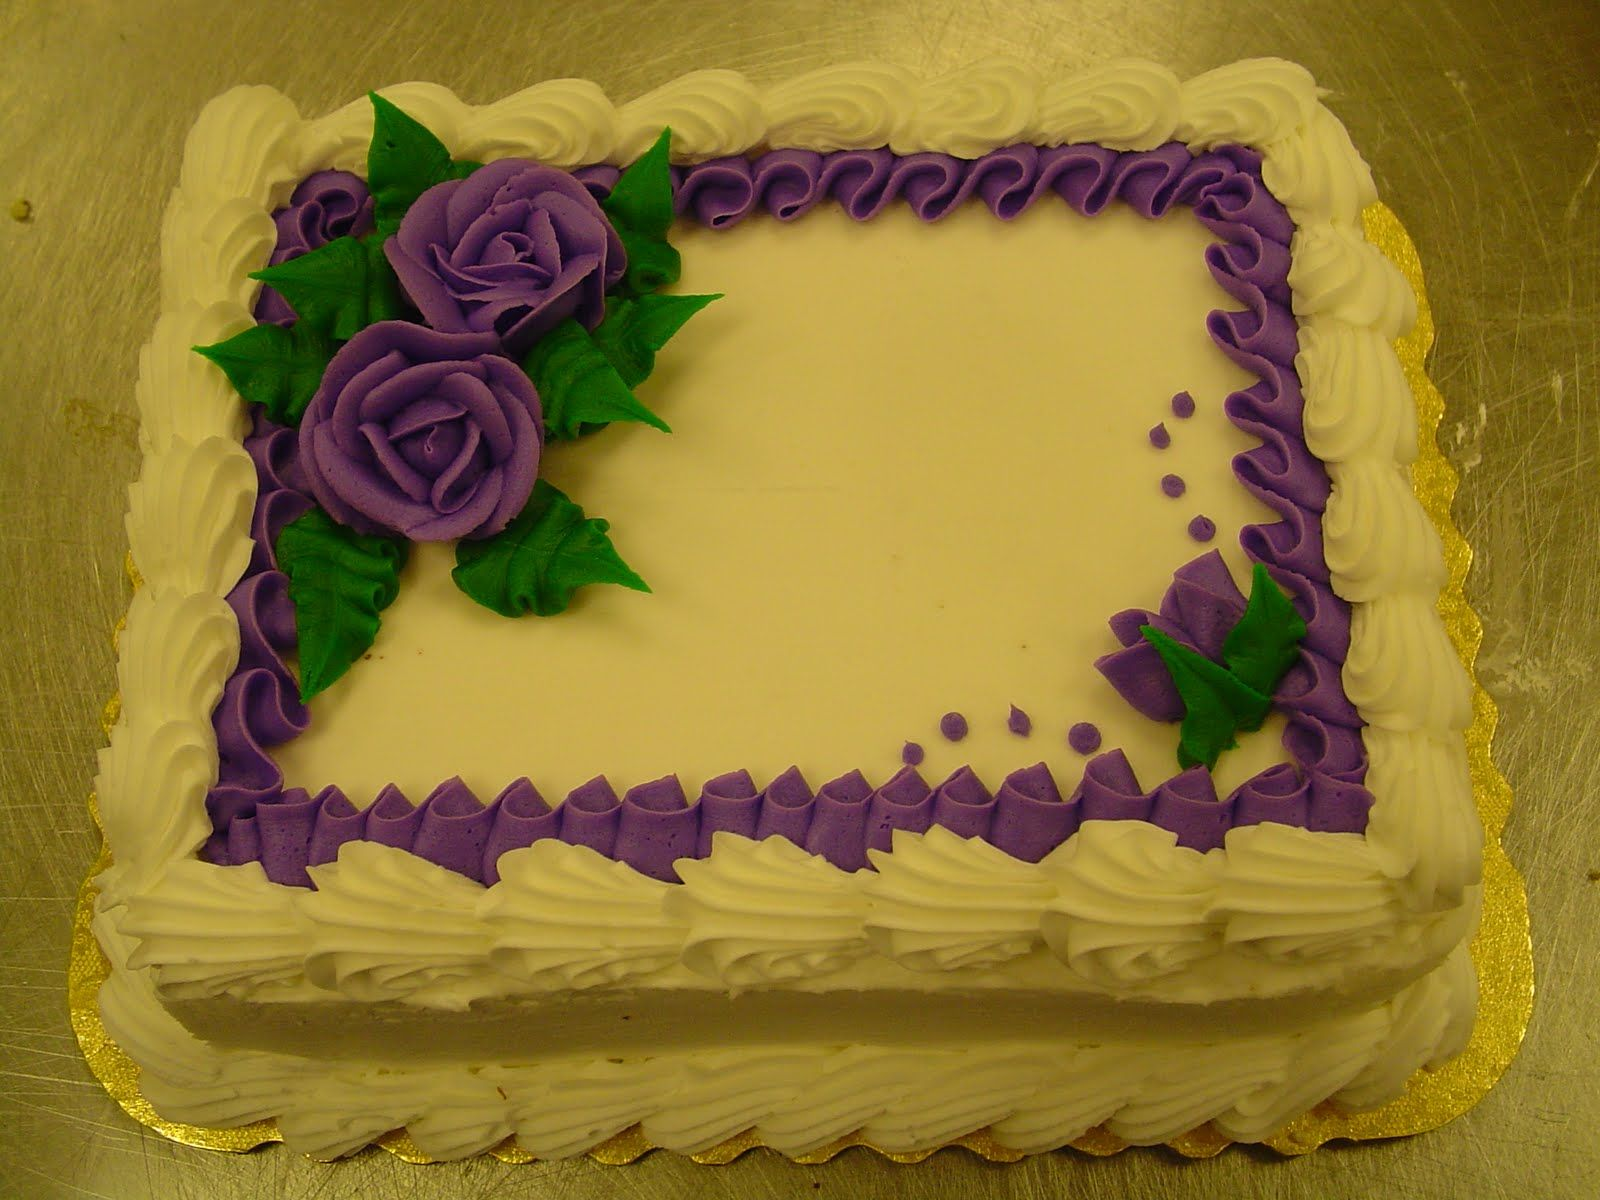 best 25 sheet cakes decorated ideas on pinterest sheet cake as a general rule a cake decorator must be able to completely decorate a 1